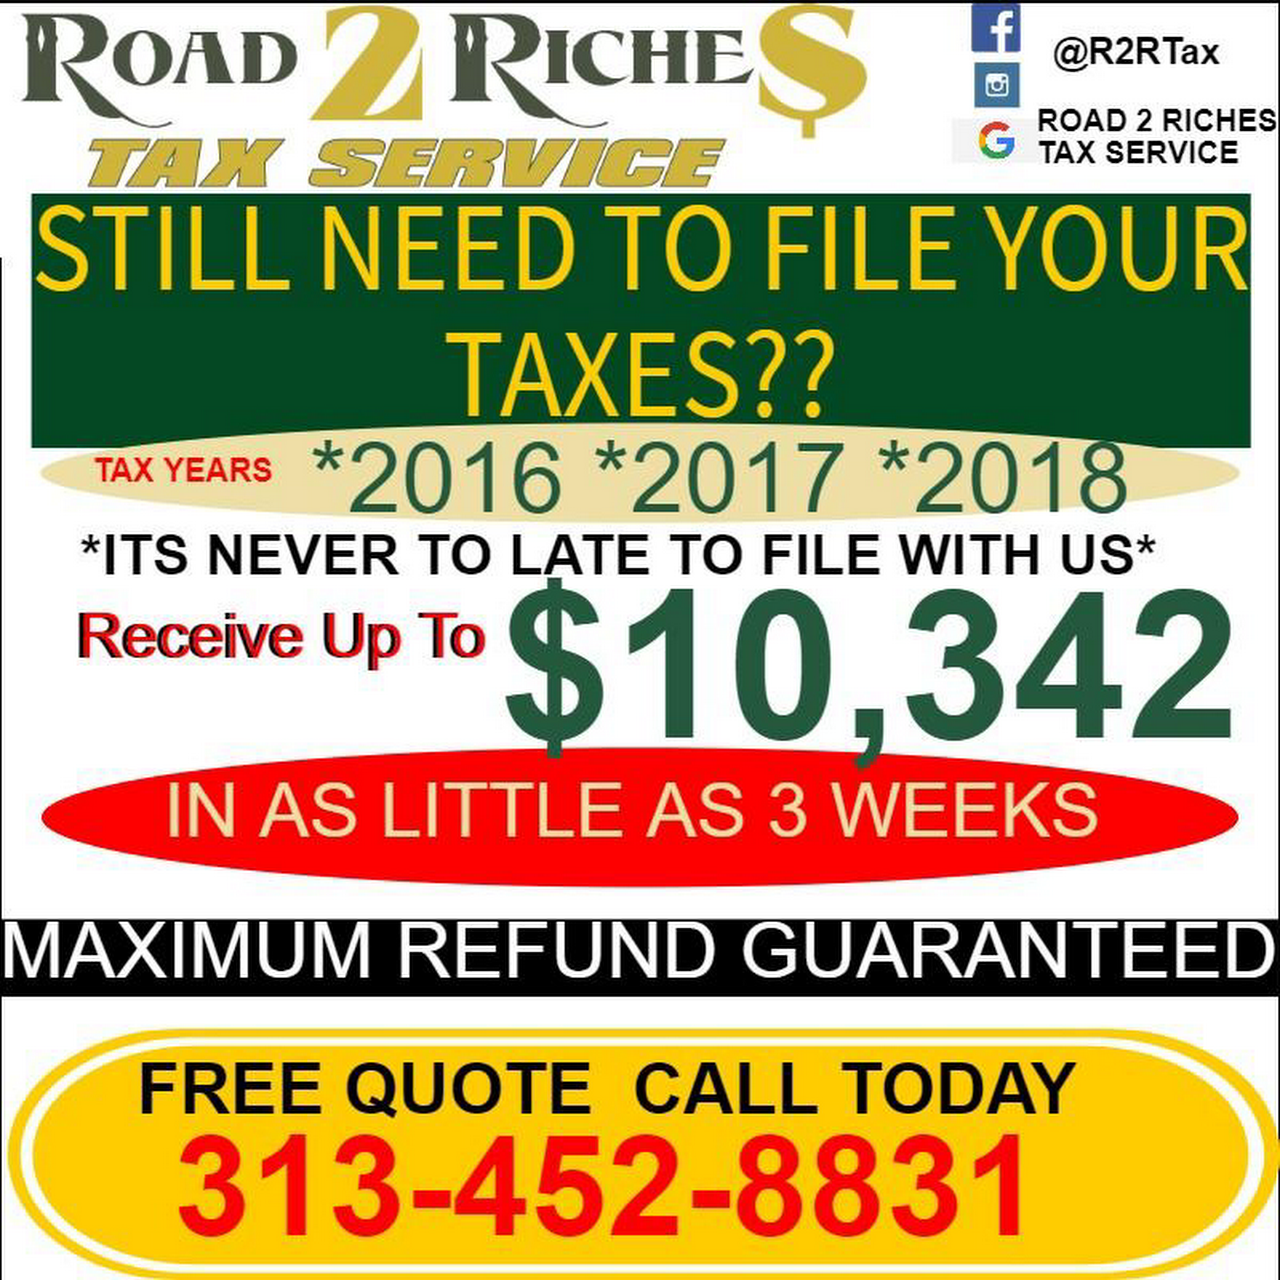 Road 2 Riches Tax Service - Tax Preparation Service